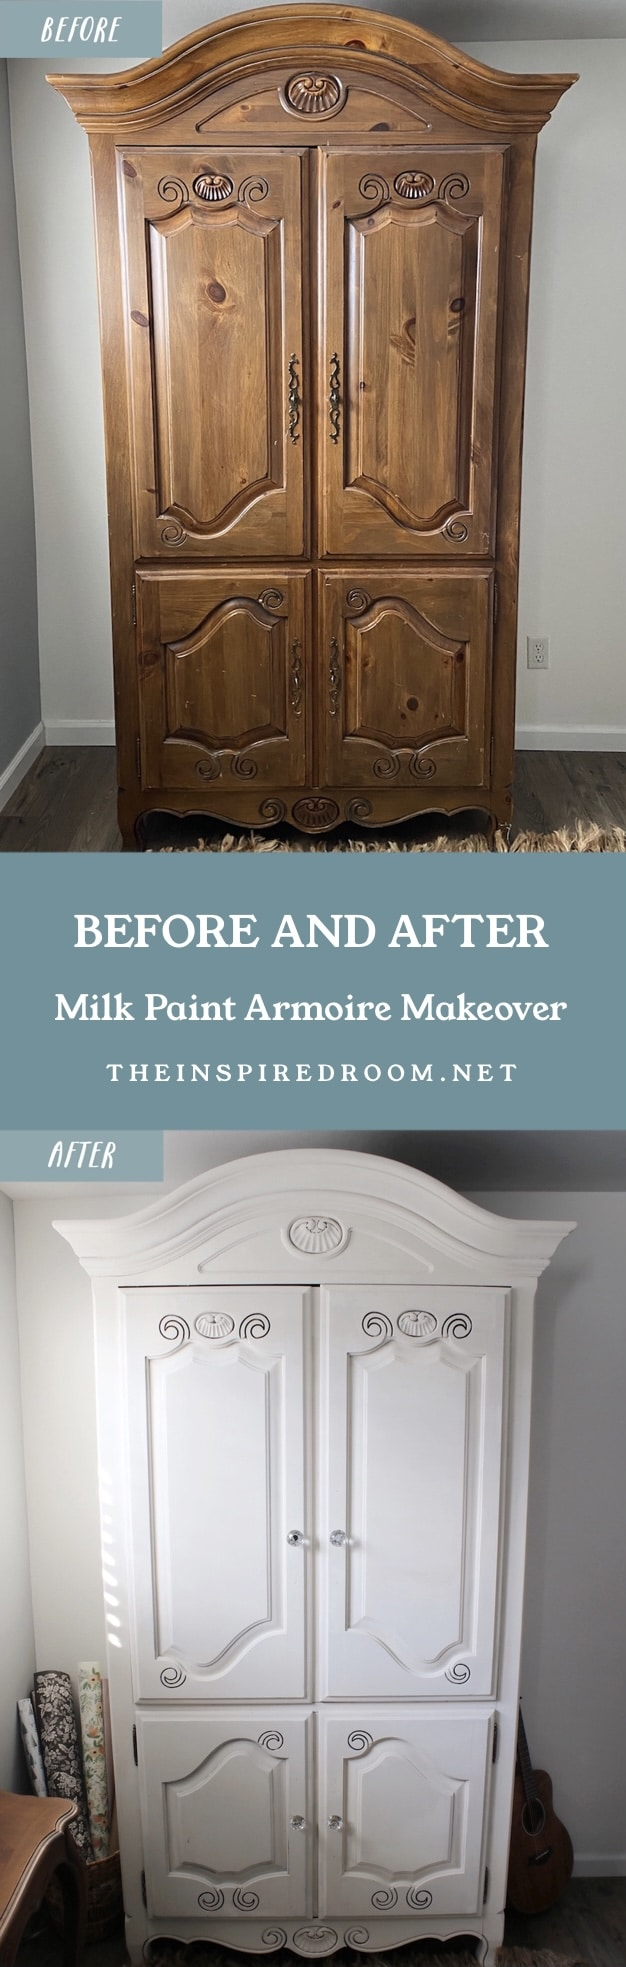 Before & After: Painted Armoire with Milk Paint